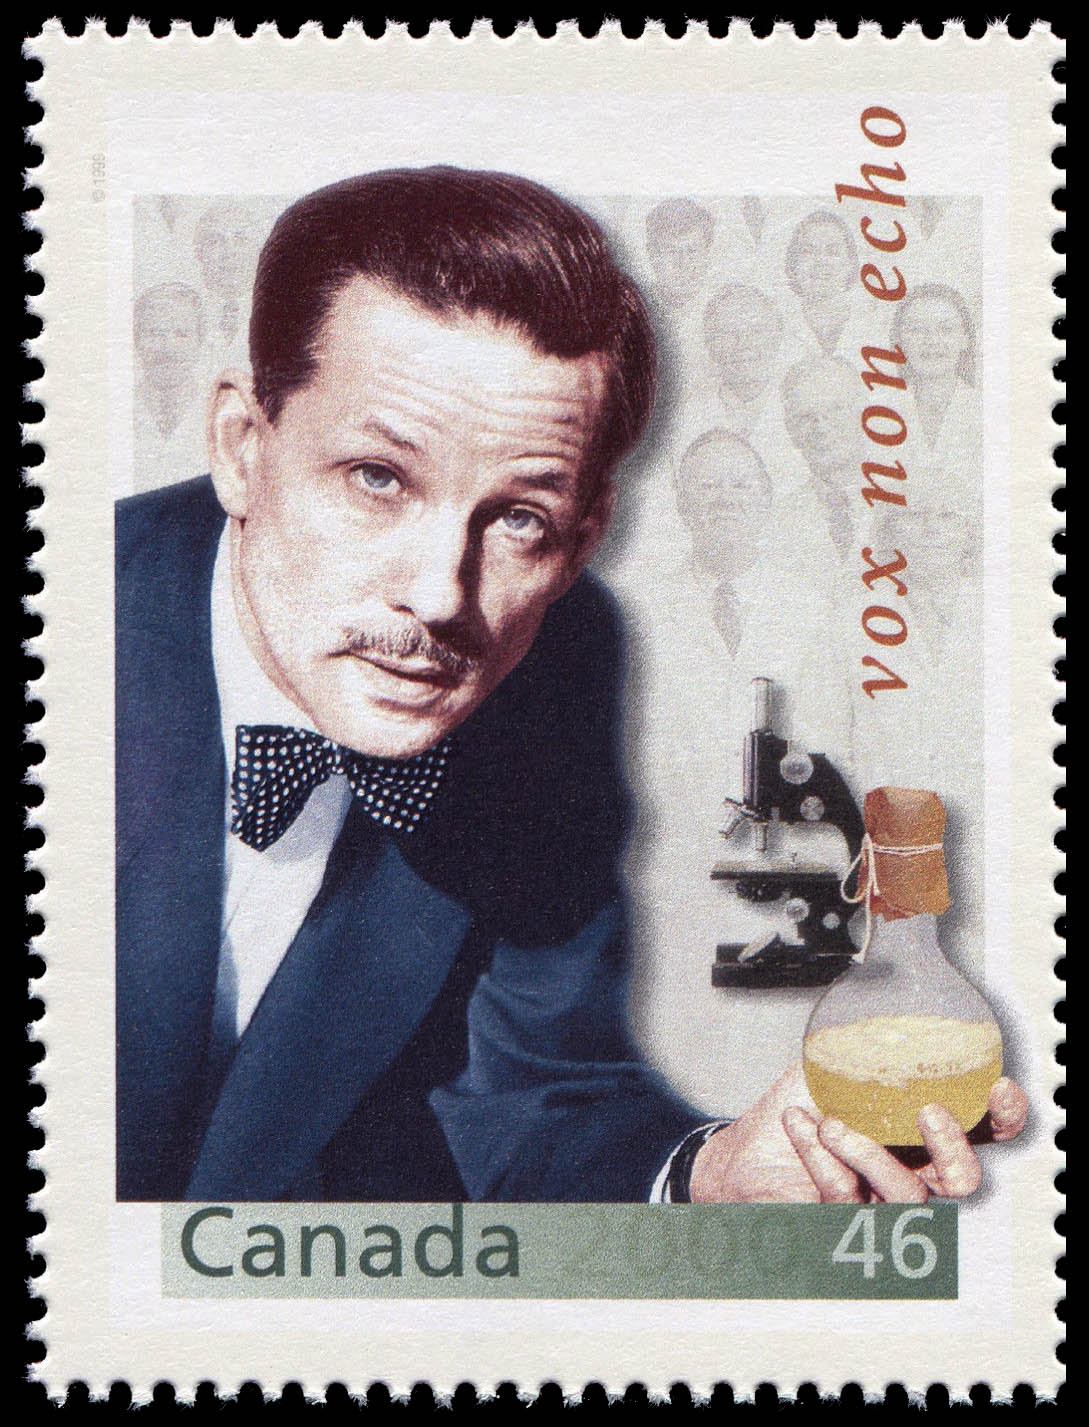 Armand Frappier: Champion Disease Fighter Canada Postage Stamp